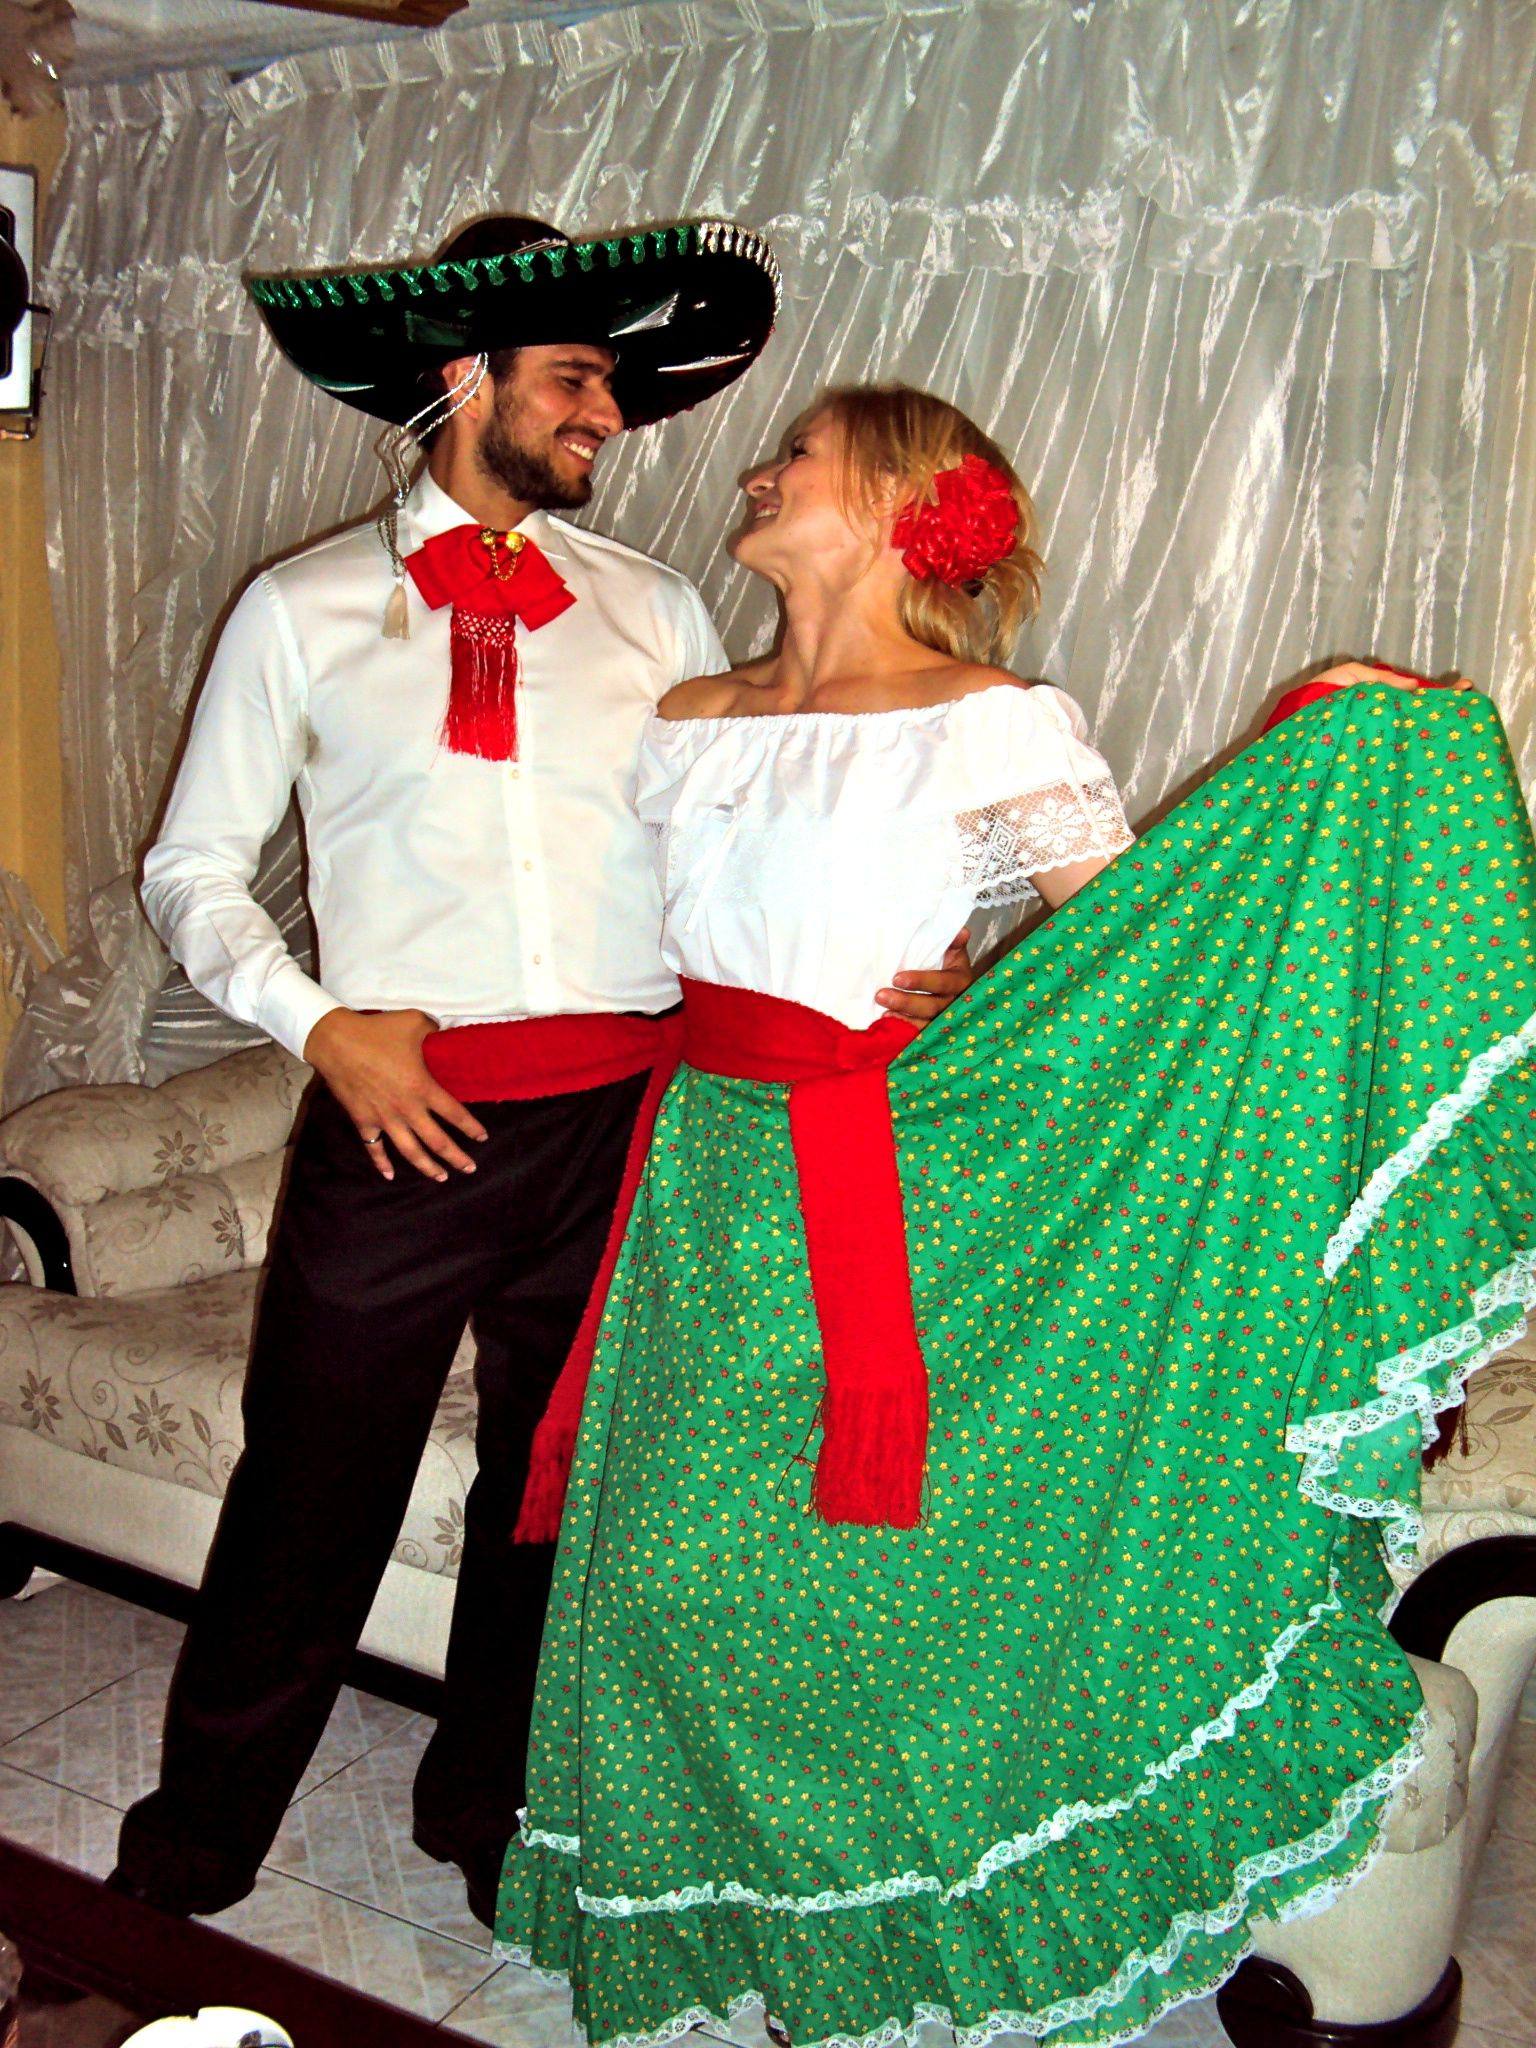 how to say fancy dress party in spanish